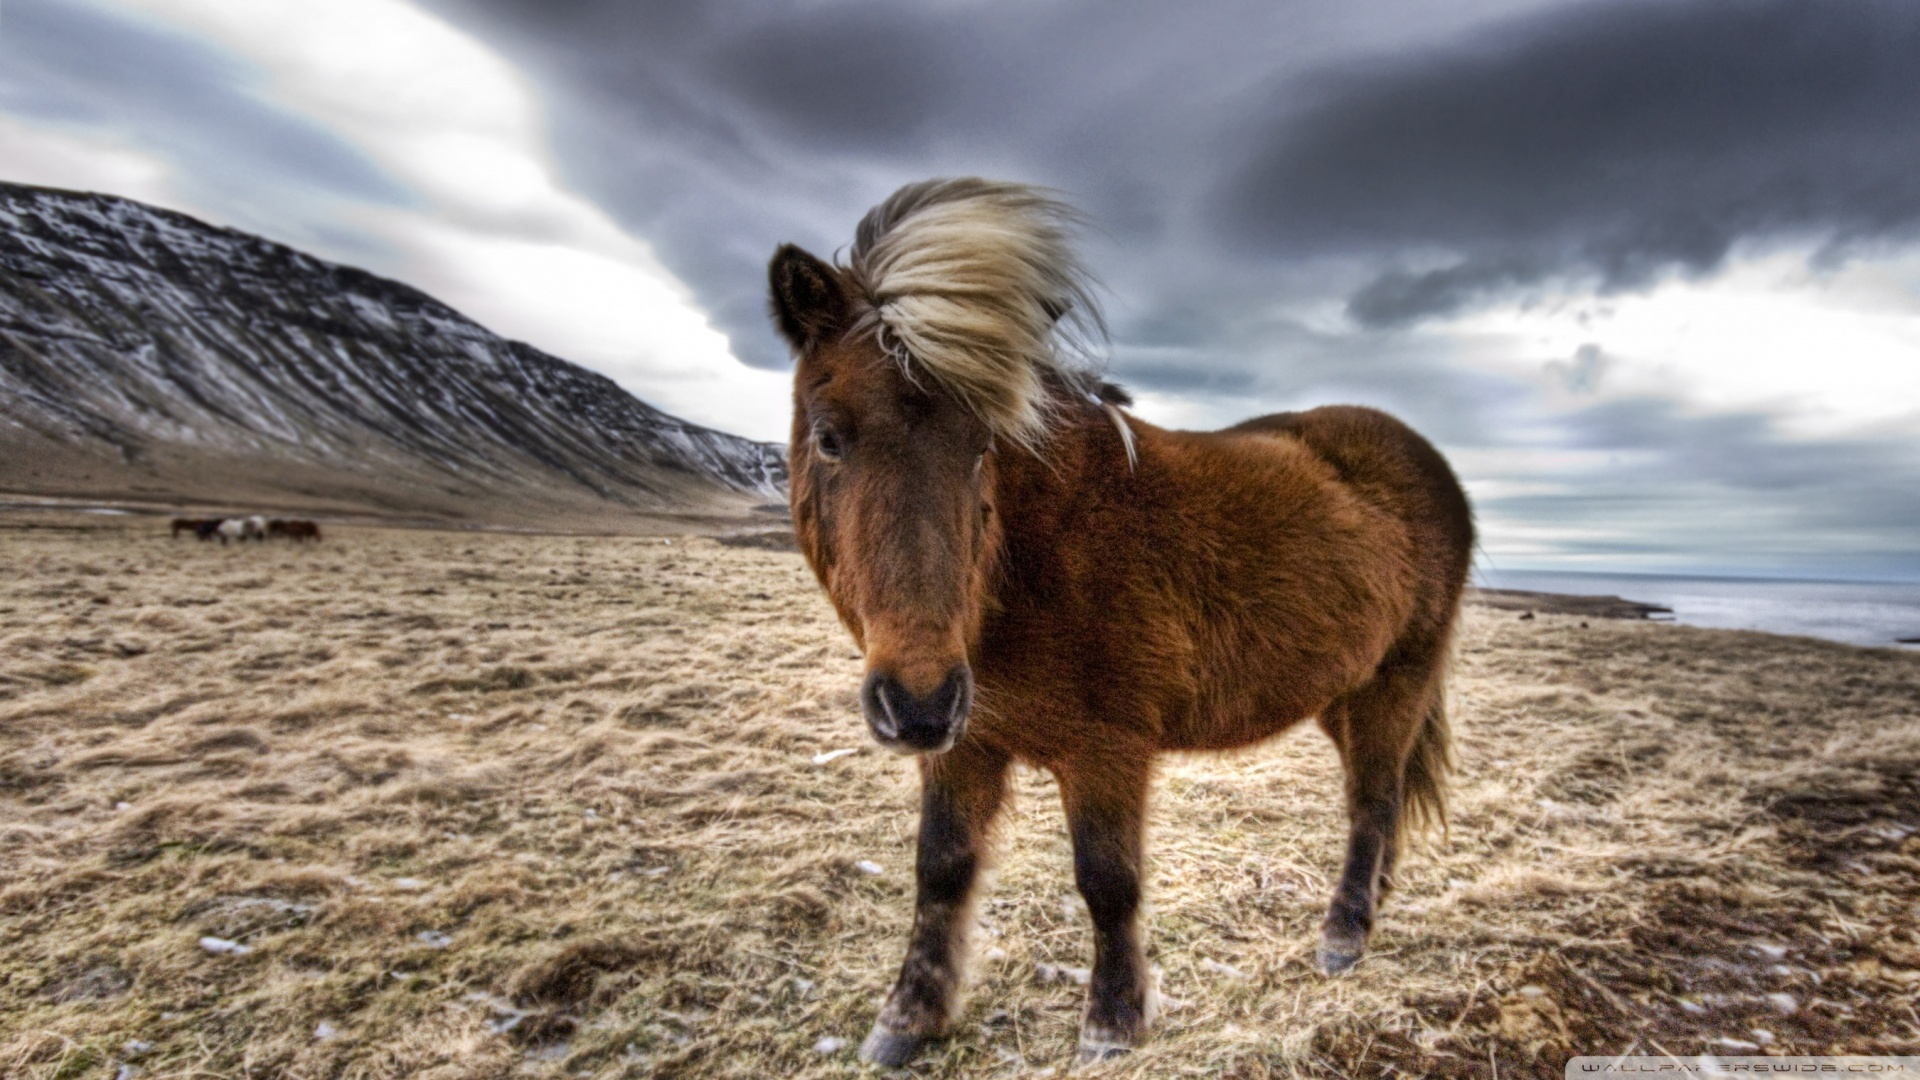 Hd Wallpapers For Mobile Free Download 480x800 Brown Horse In Iceland 4k Hd Desktop Wallpaper For 4k